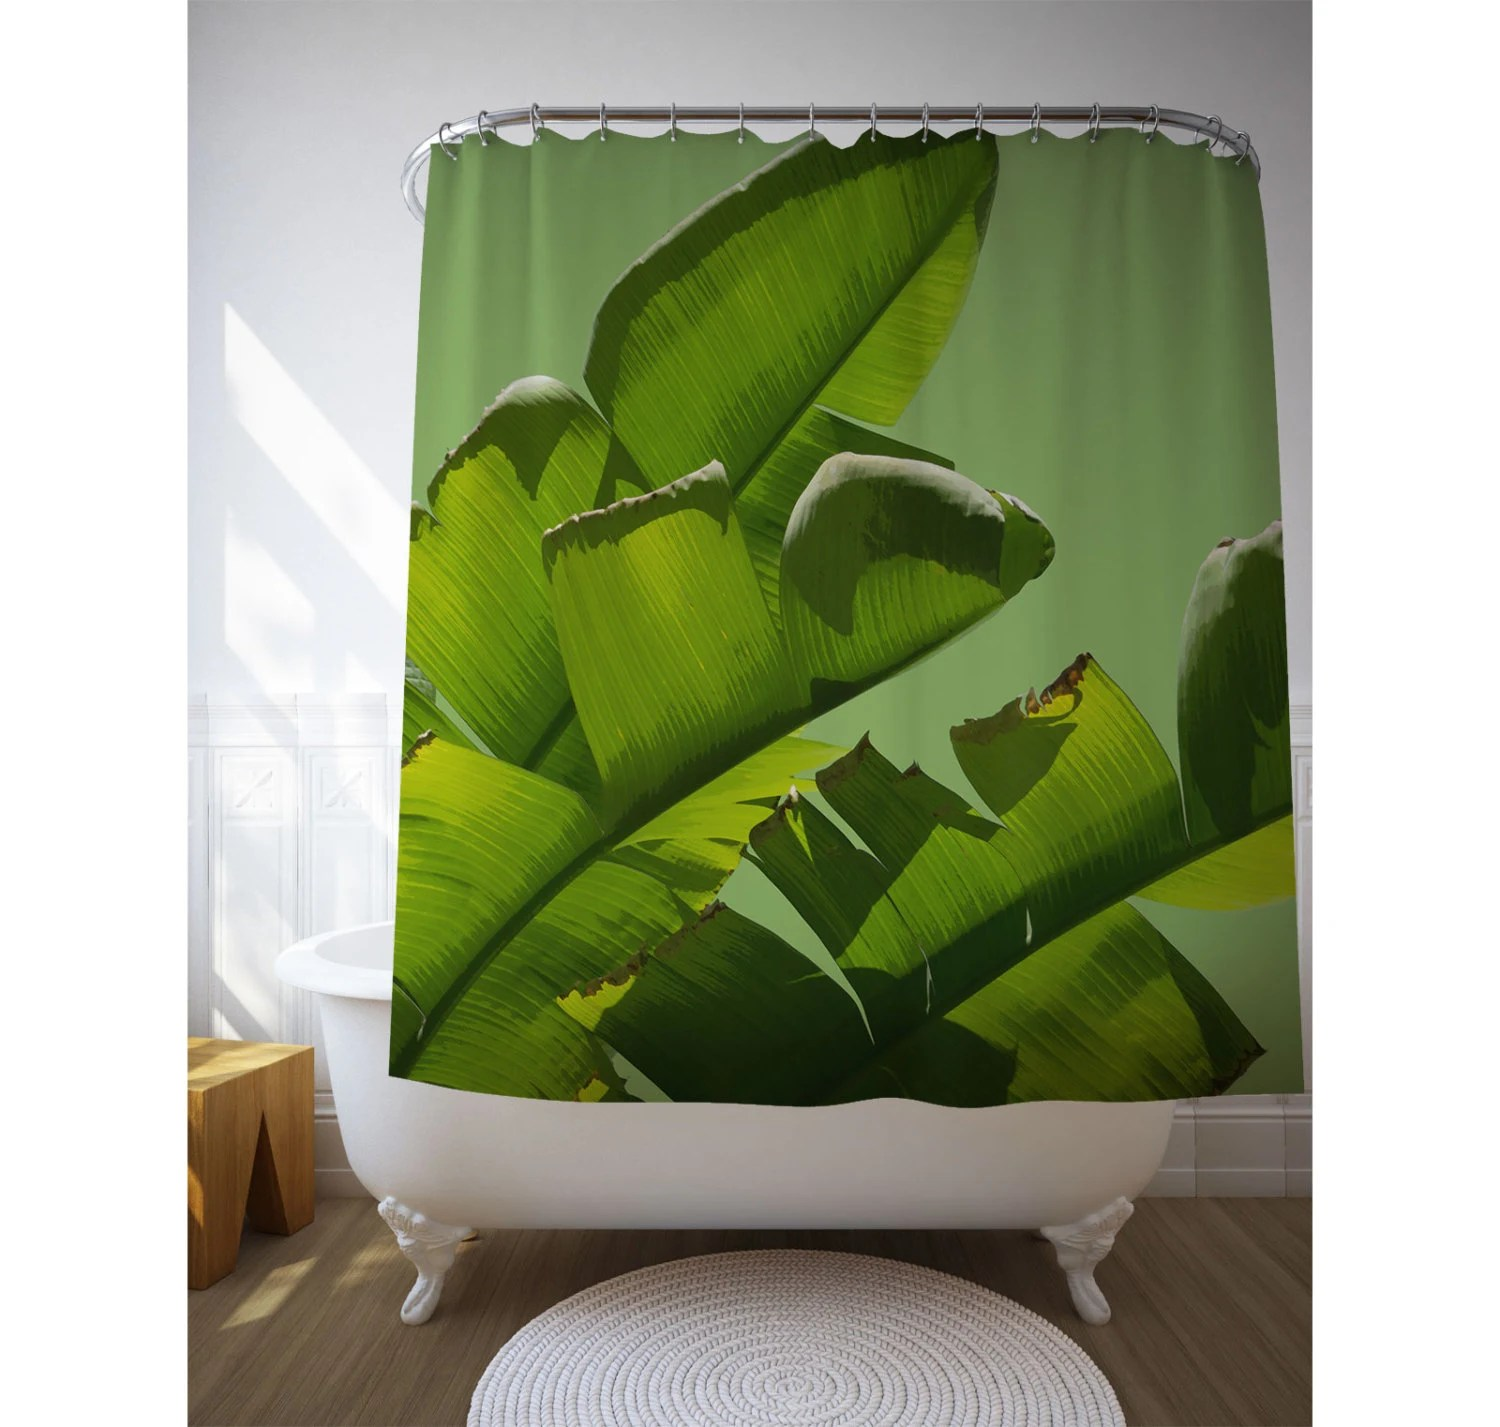 Banana Leaf Shower Curtain Banana Leaf Curtain Shower Curtain Tropical Shower Art Bathroom Decor Green Decor Bath Gifts Home Gift